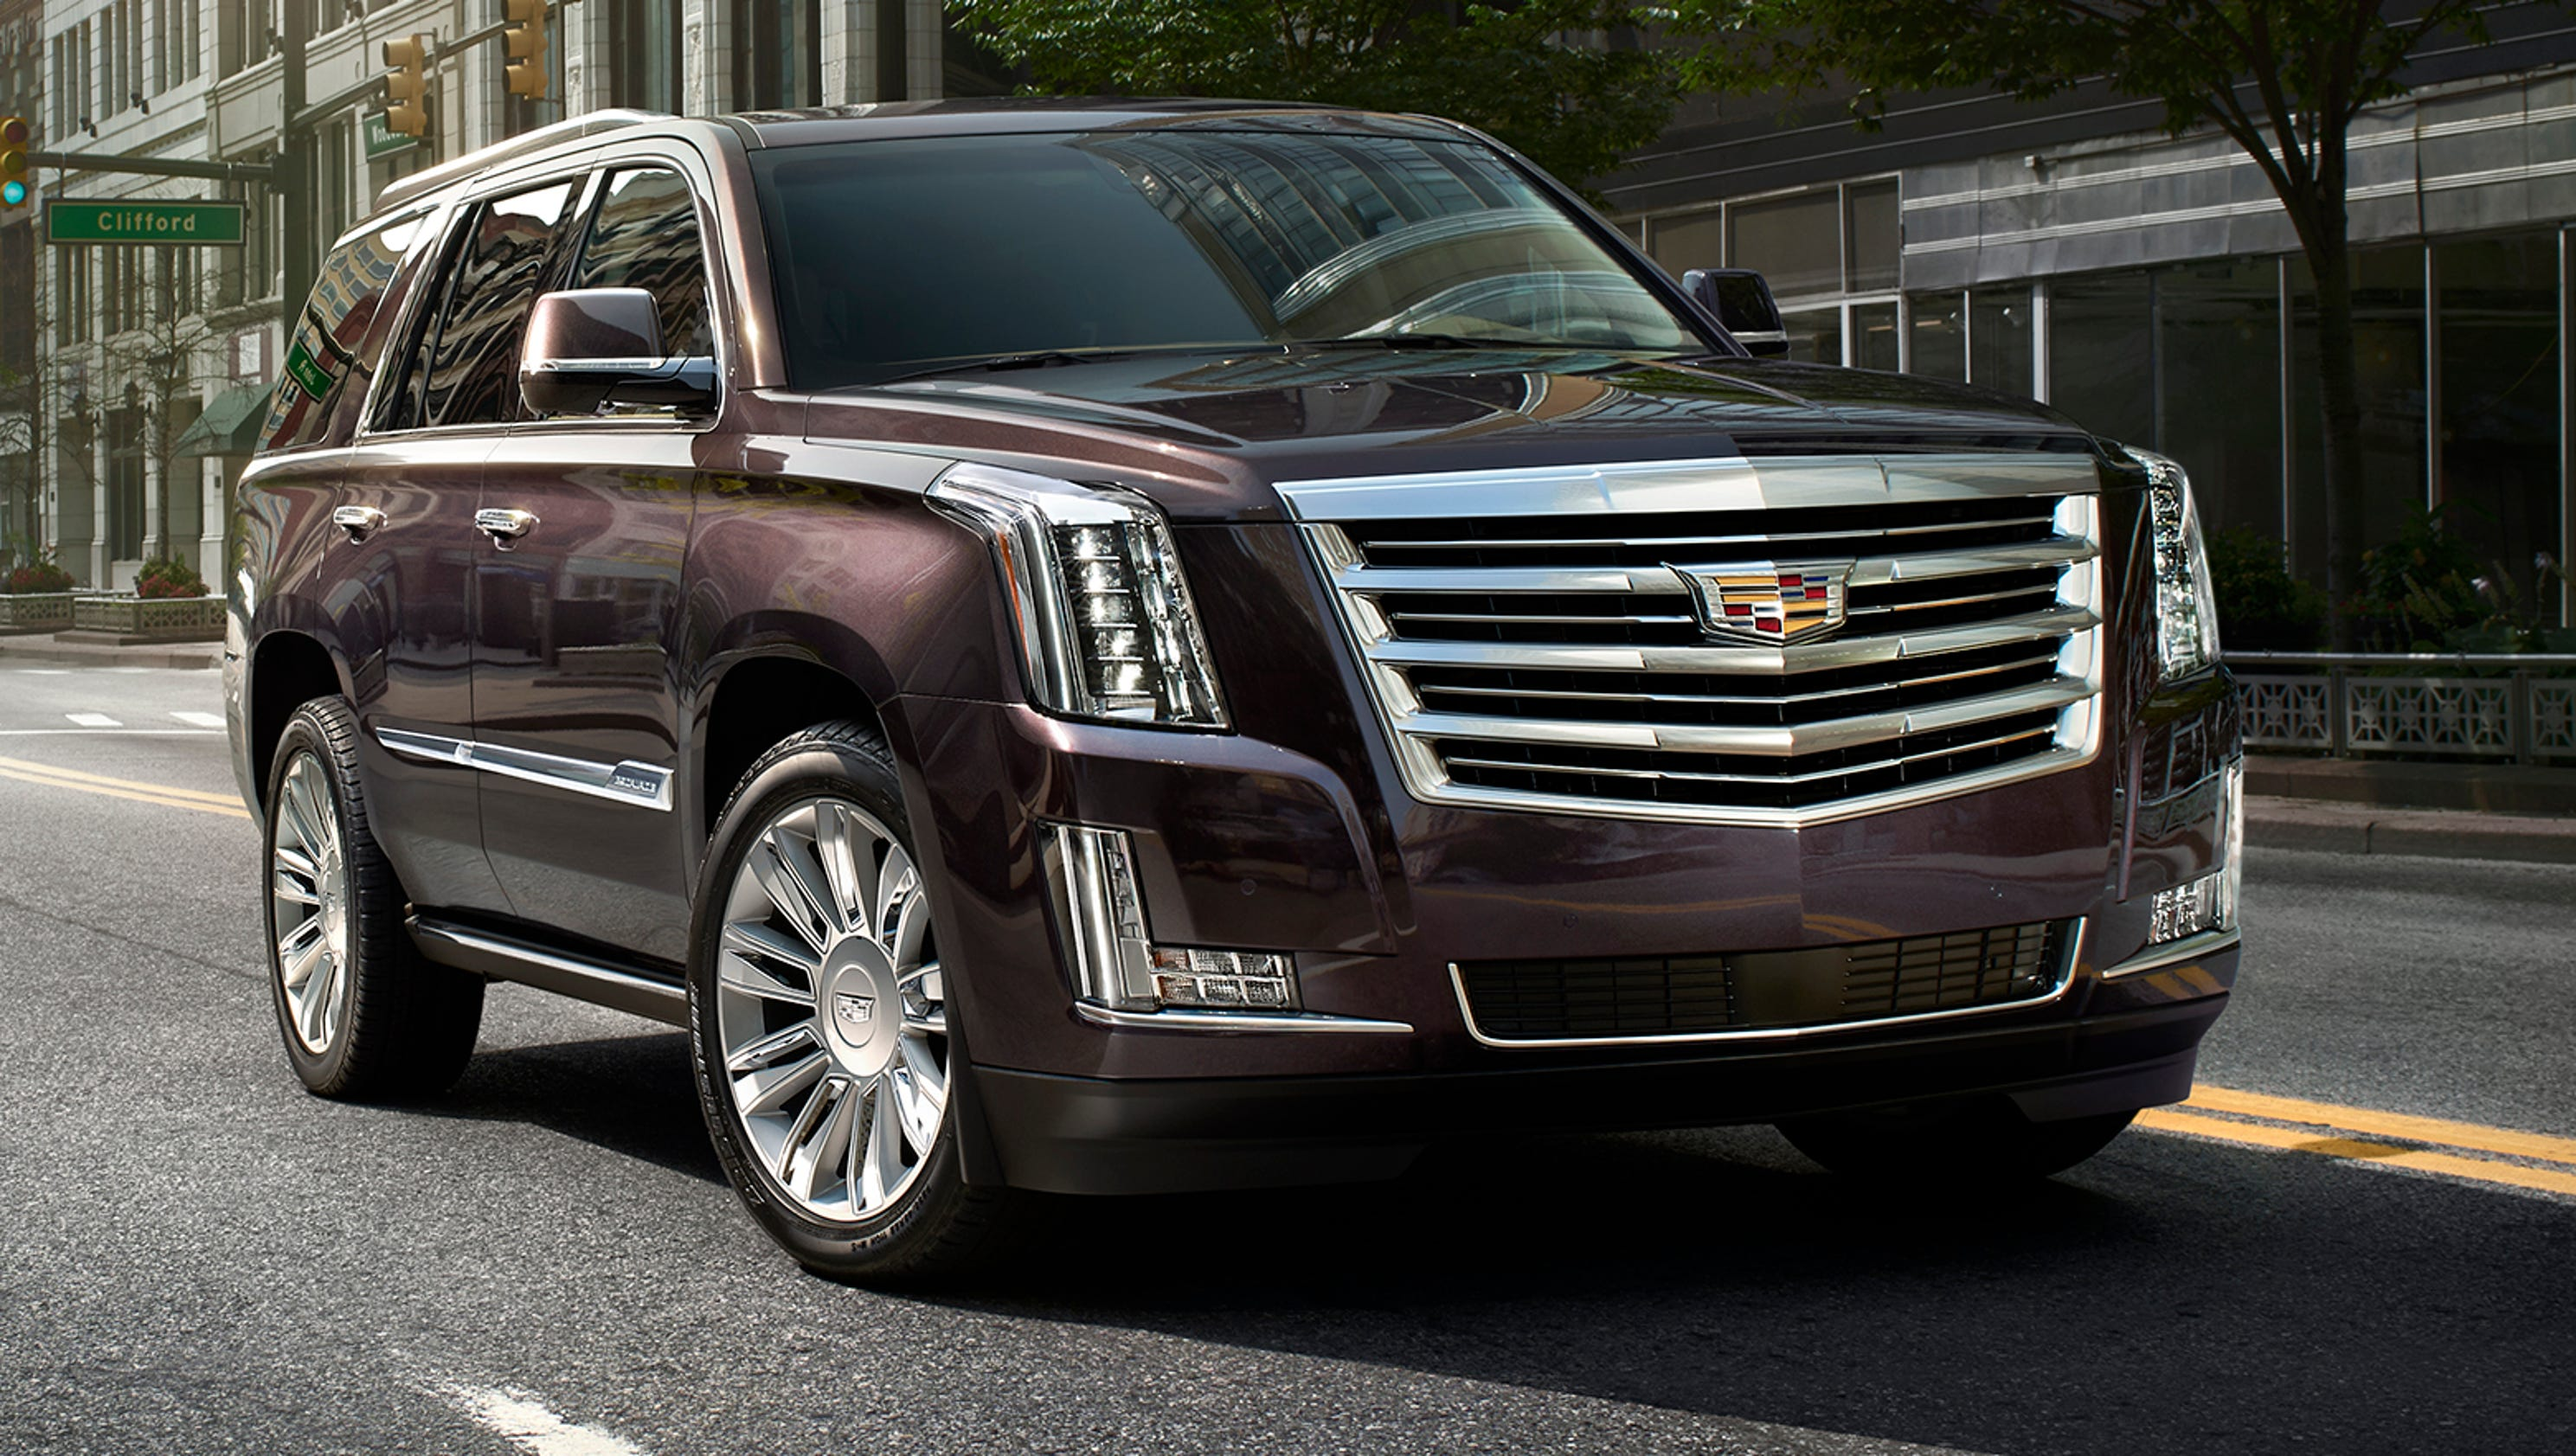 escalade in cadillac black ny rental york car new luxury